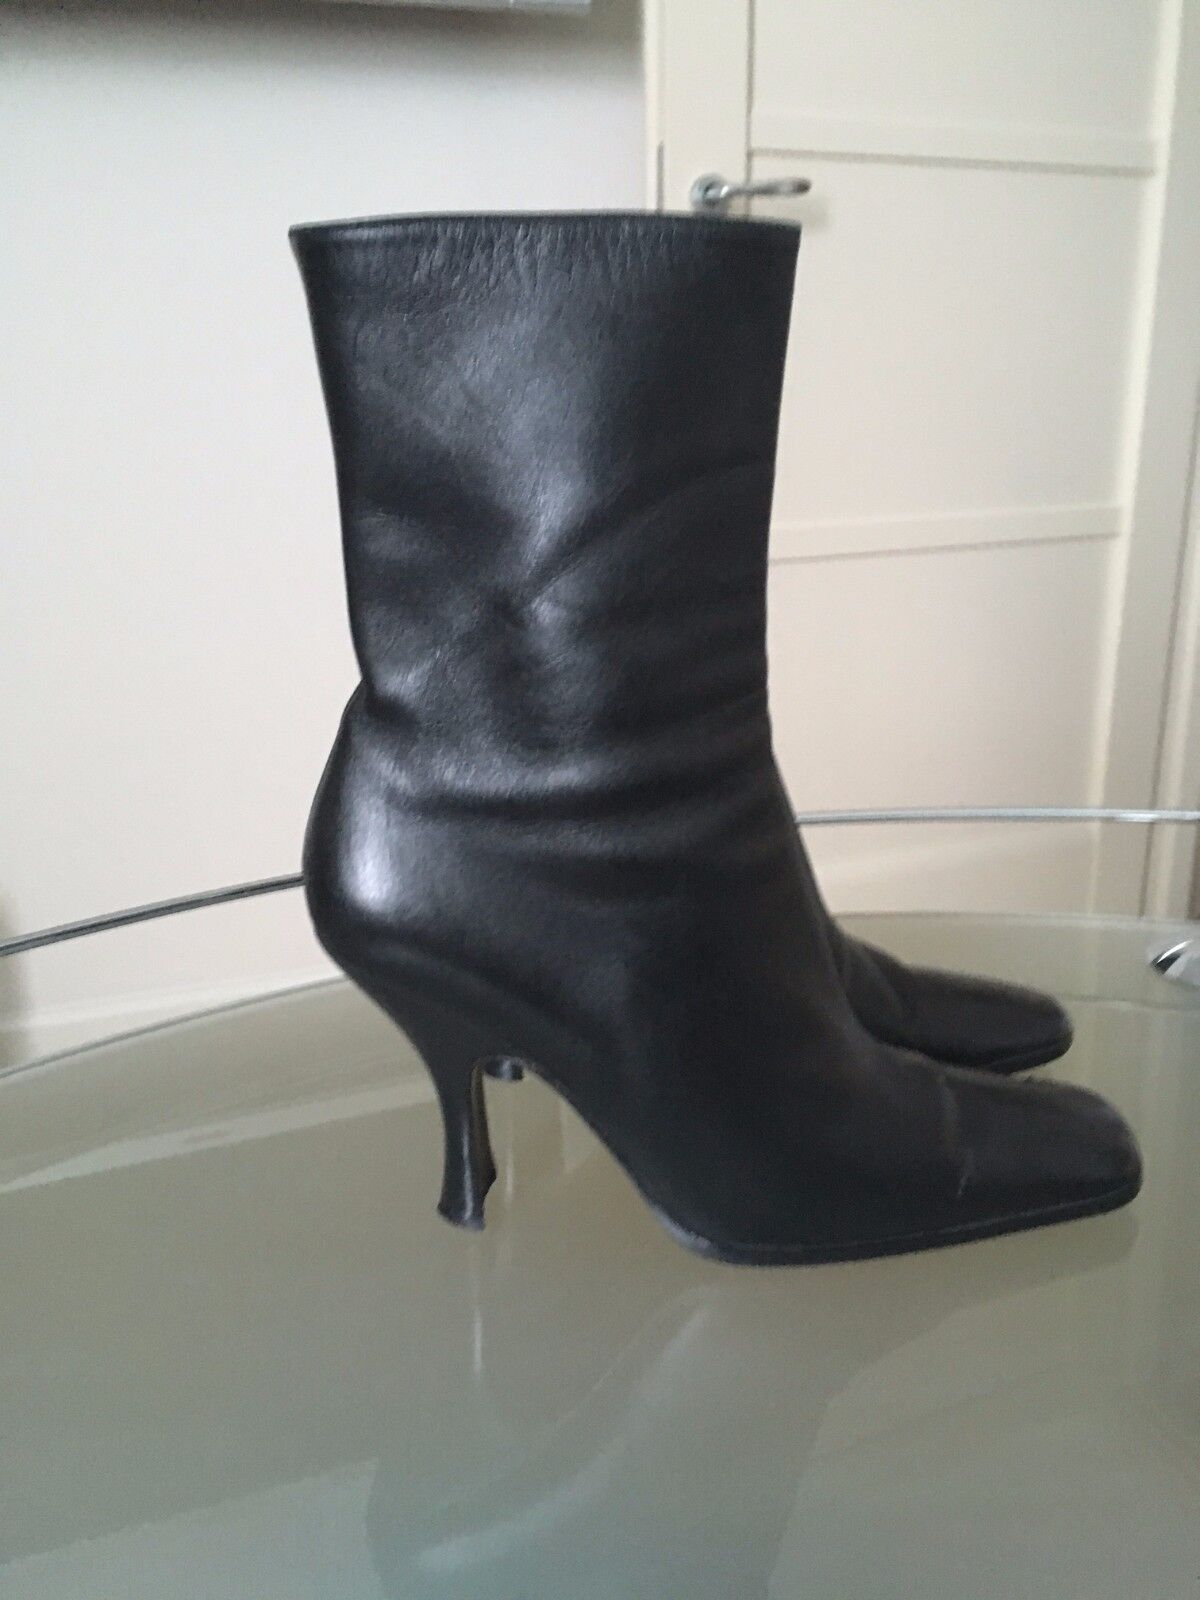 Prada Short Leather Boots Size 39 (US 9) Square Toe